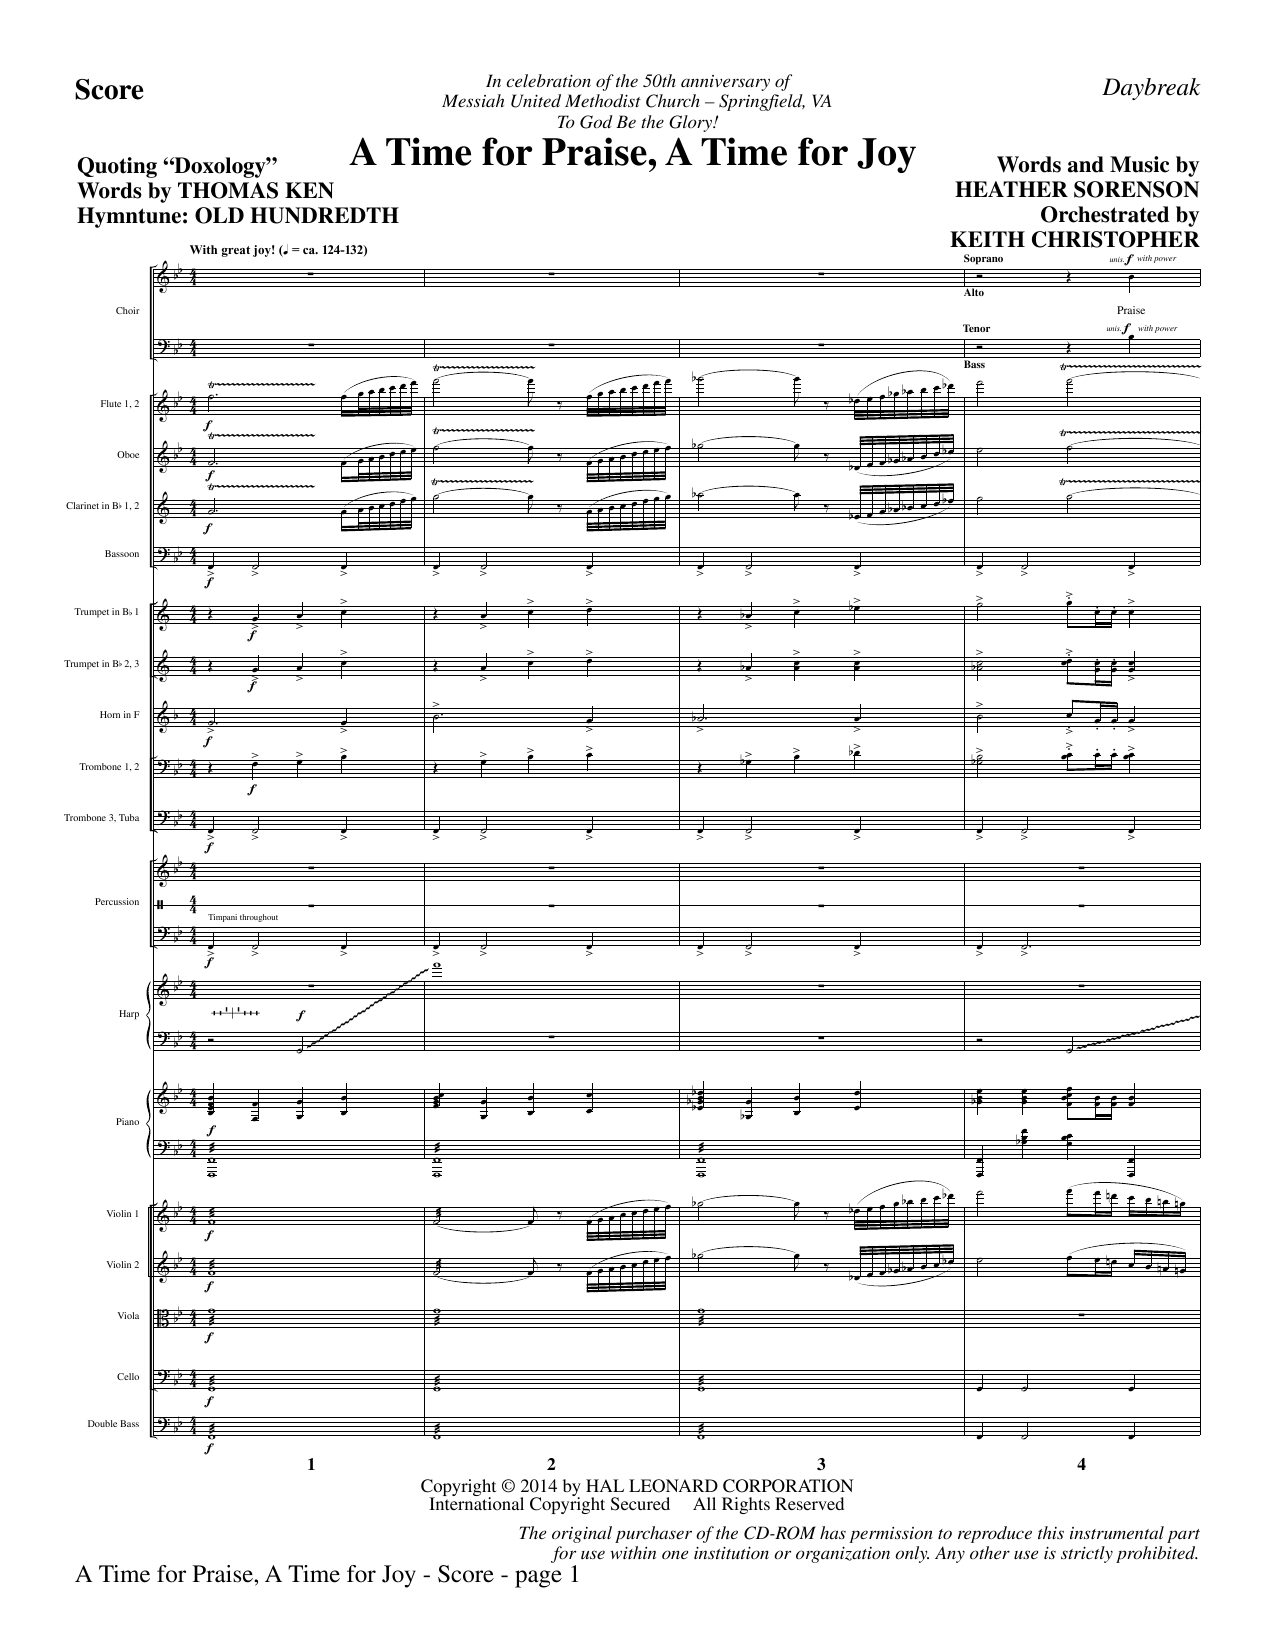 A Time for Praise, A Time for Joy (COMPLETE) sheet music for orchestra/band by Heather Sorenson, Louis Bourgeois and Thomas Ken. Score Image Preview.